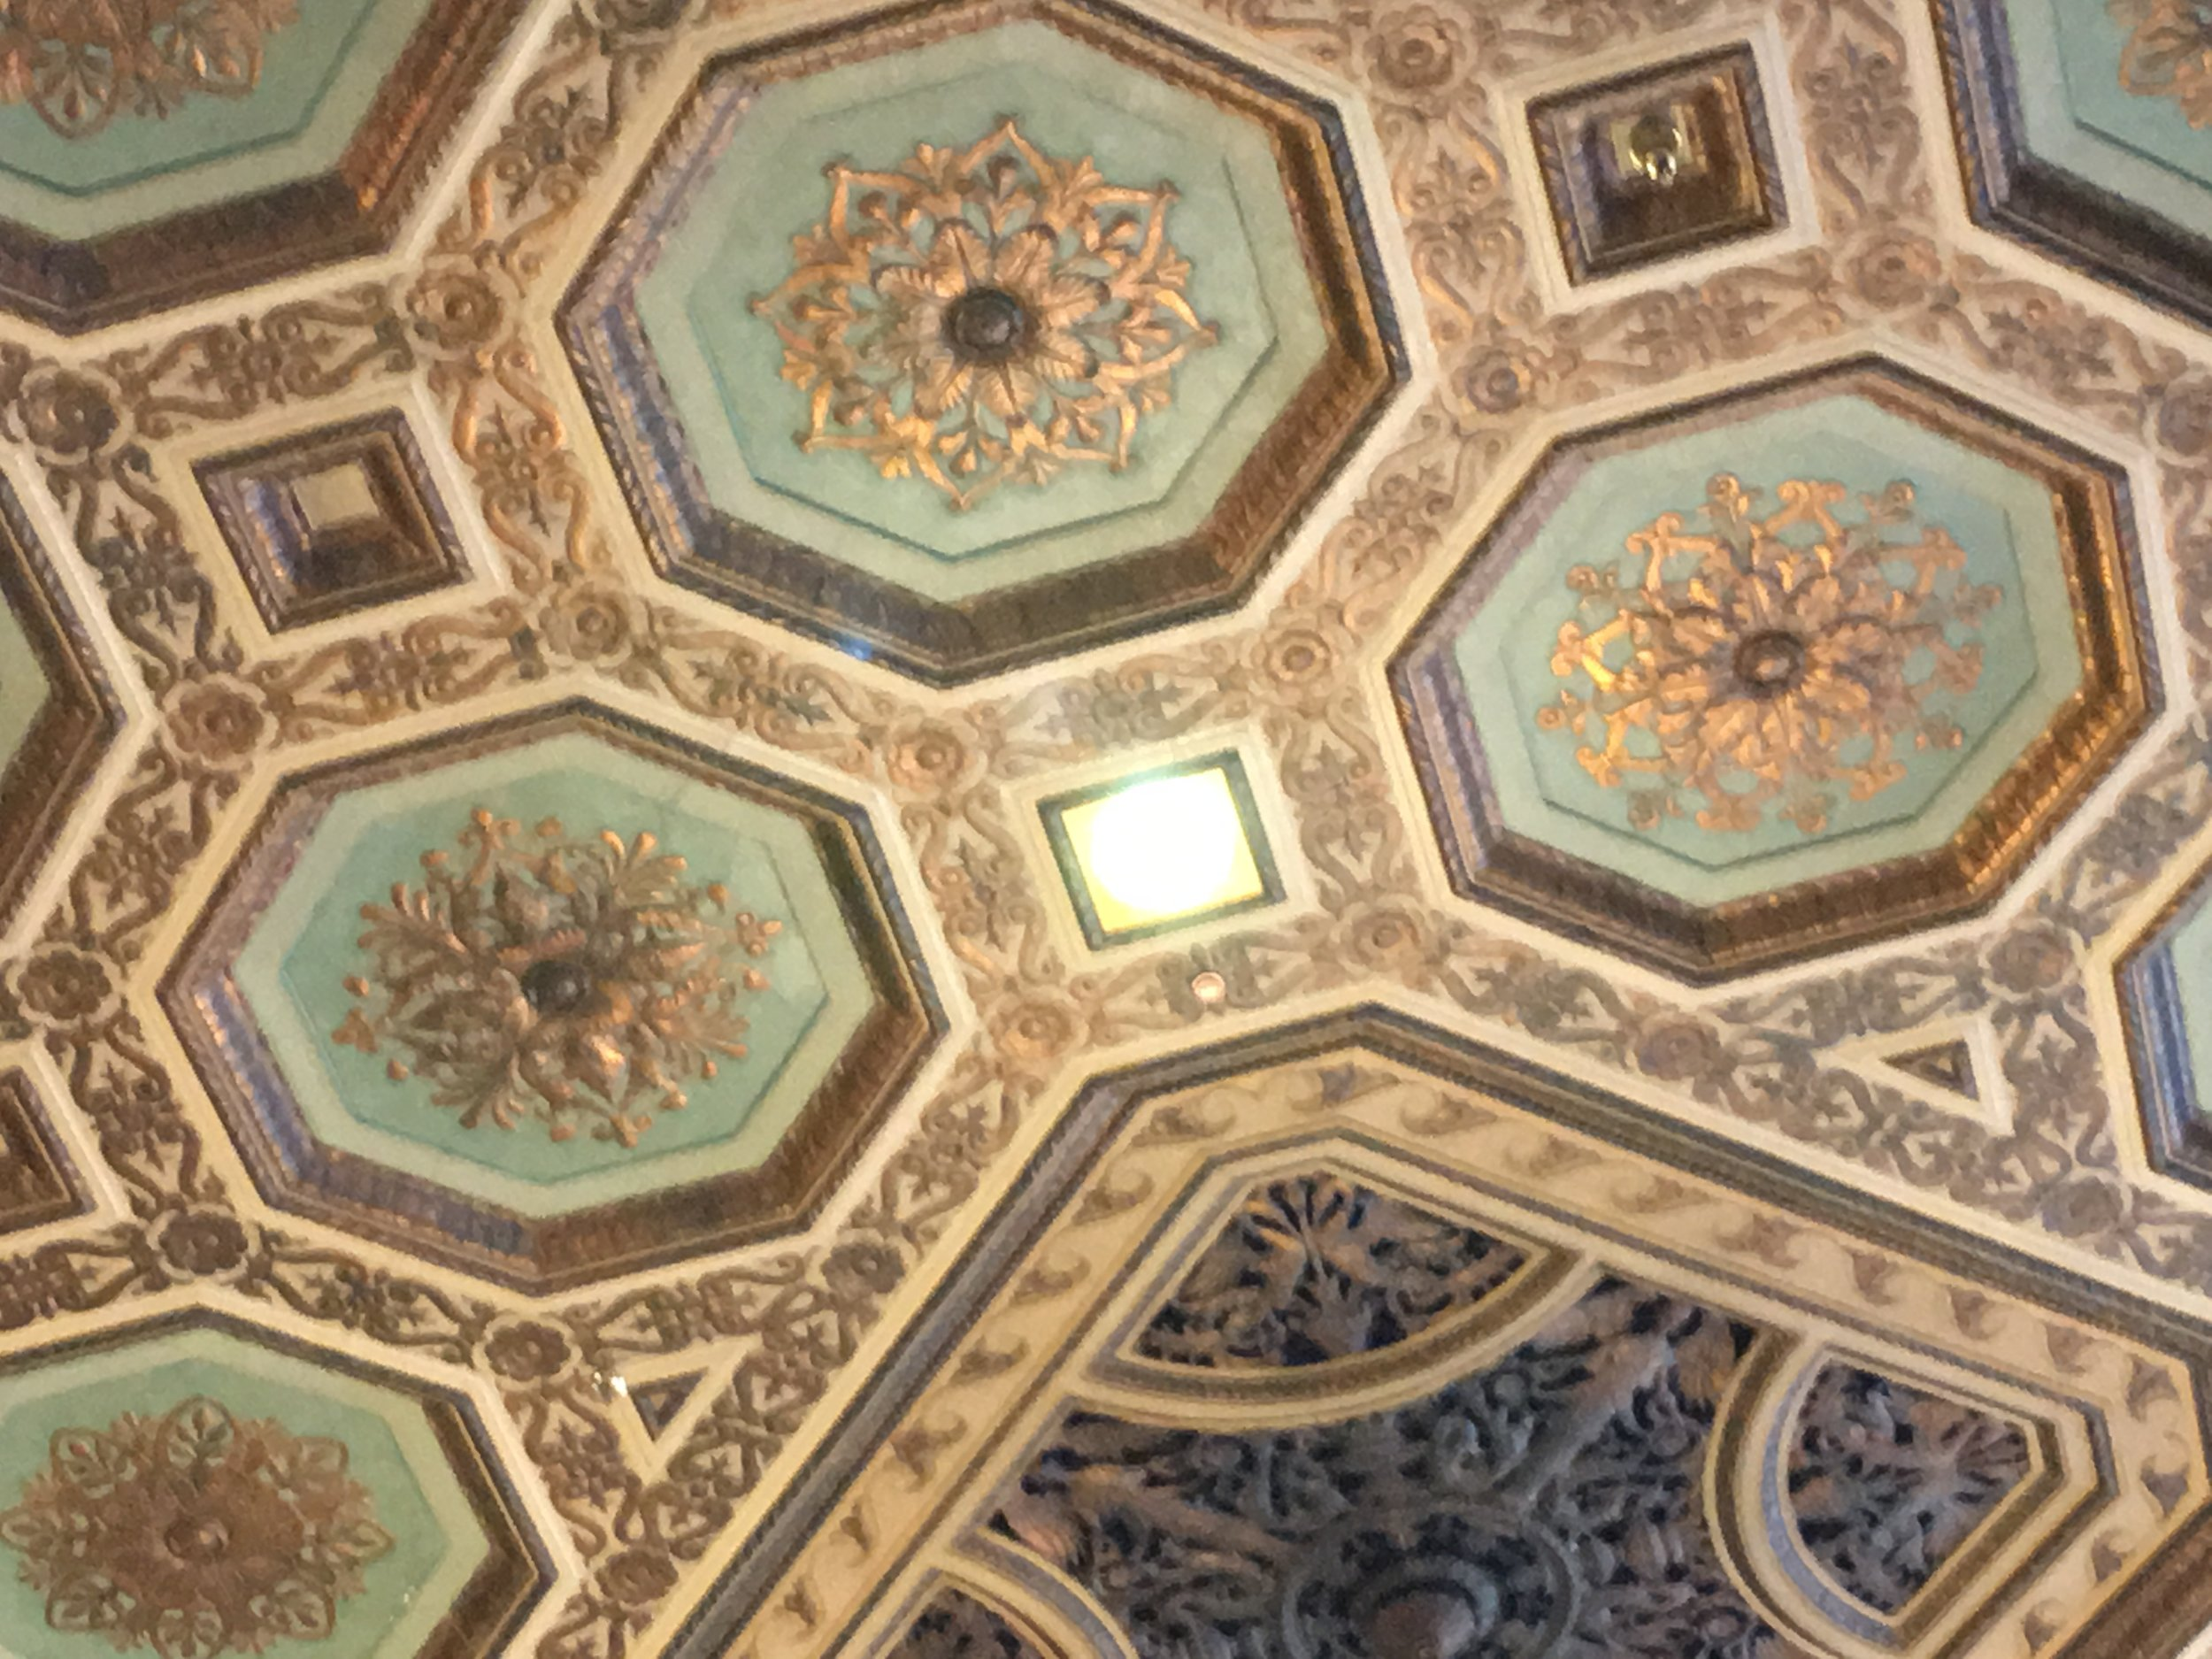 The magnificent ceiling!